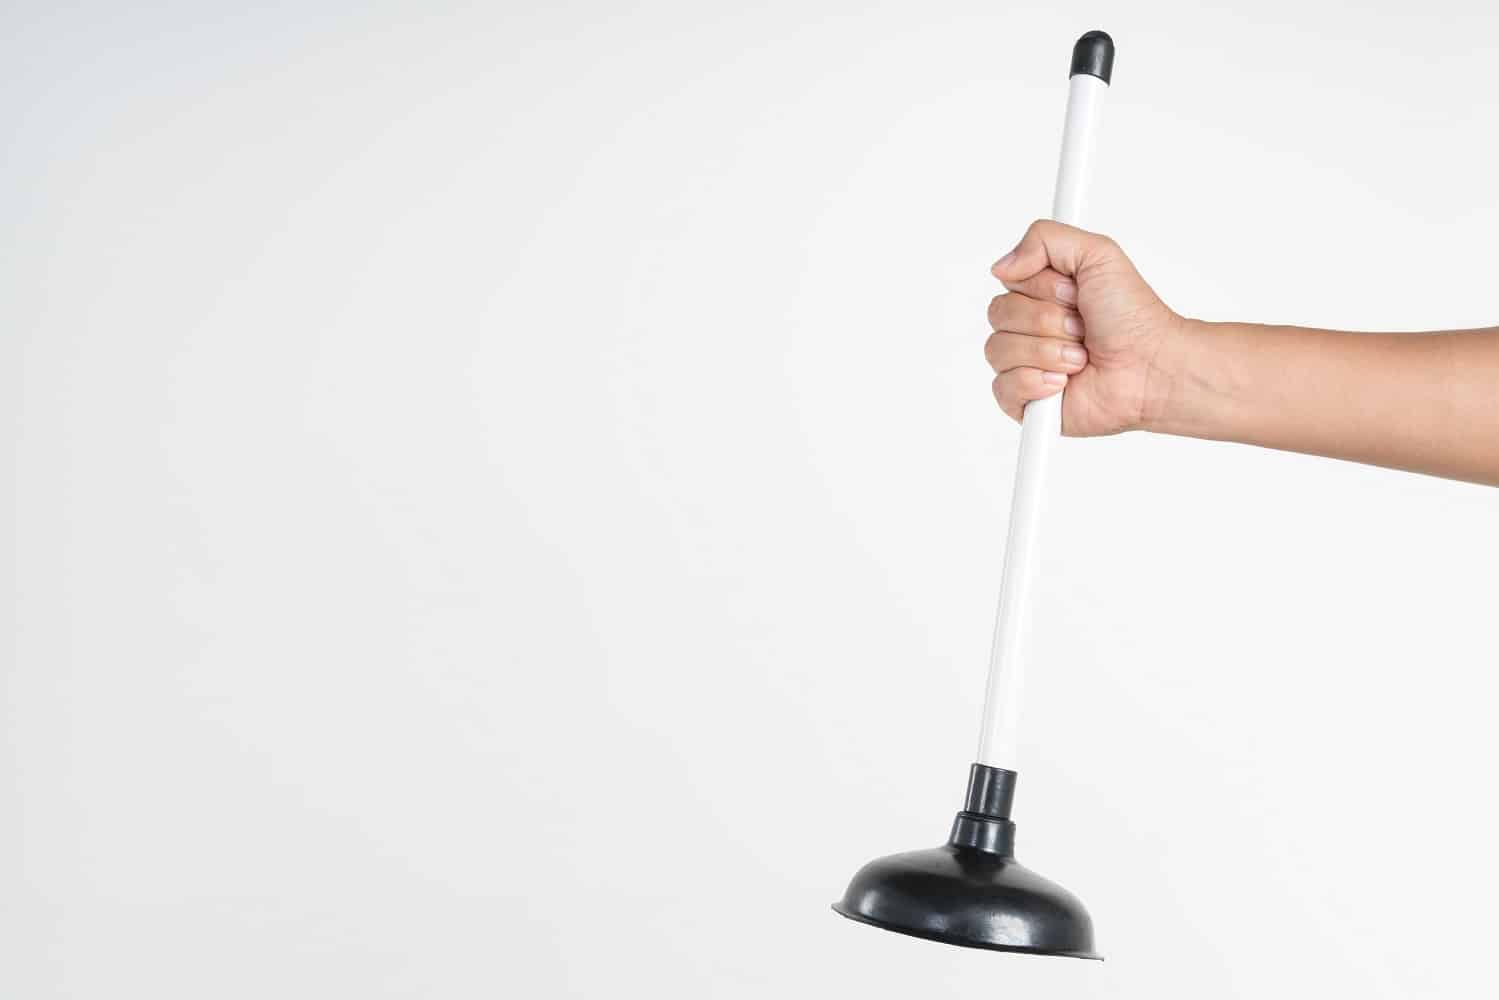 Hand holding toilet black rubber plunger or toilet suction cup for unclog water pipe on white background